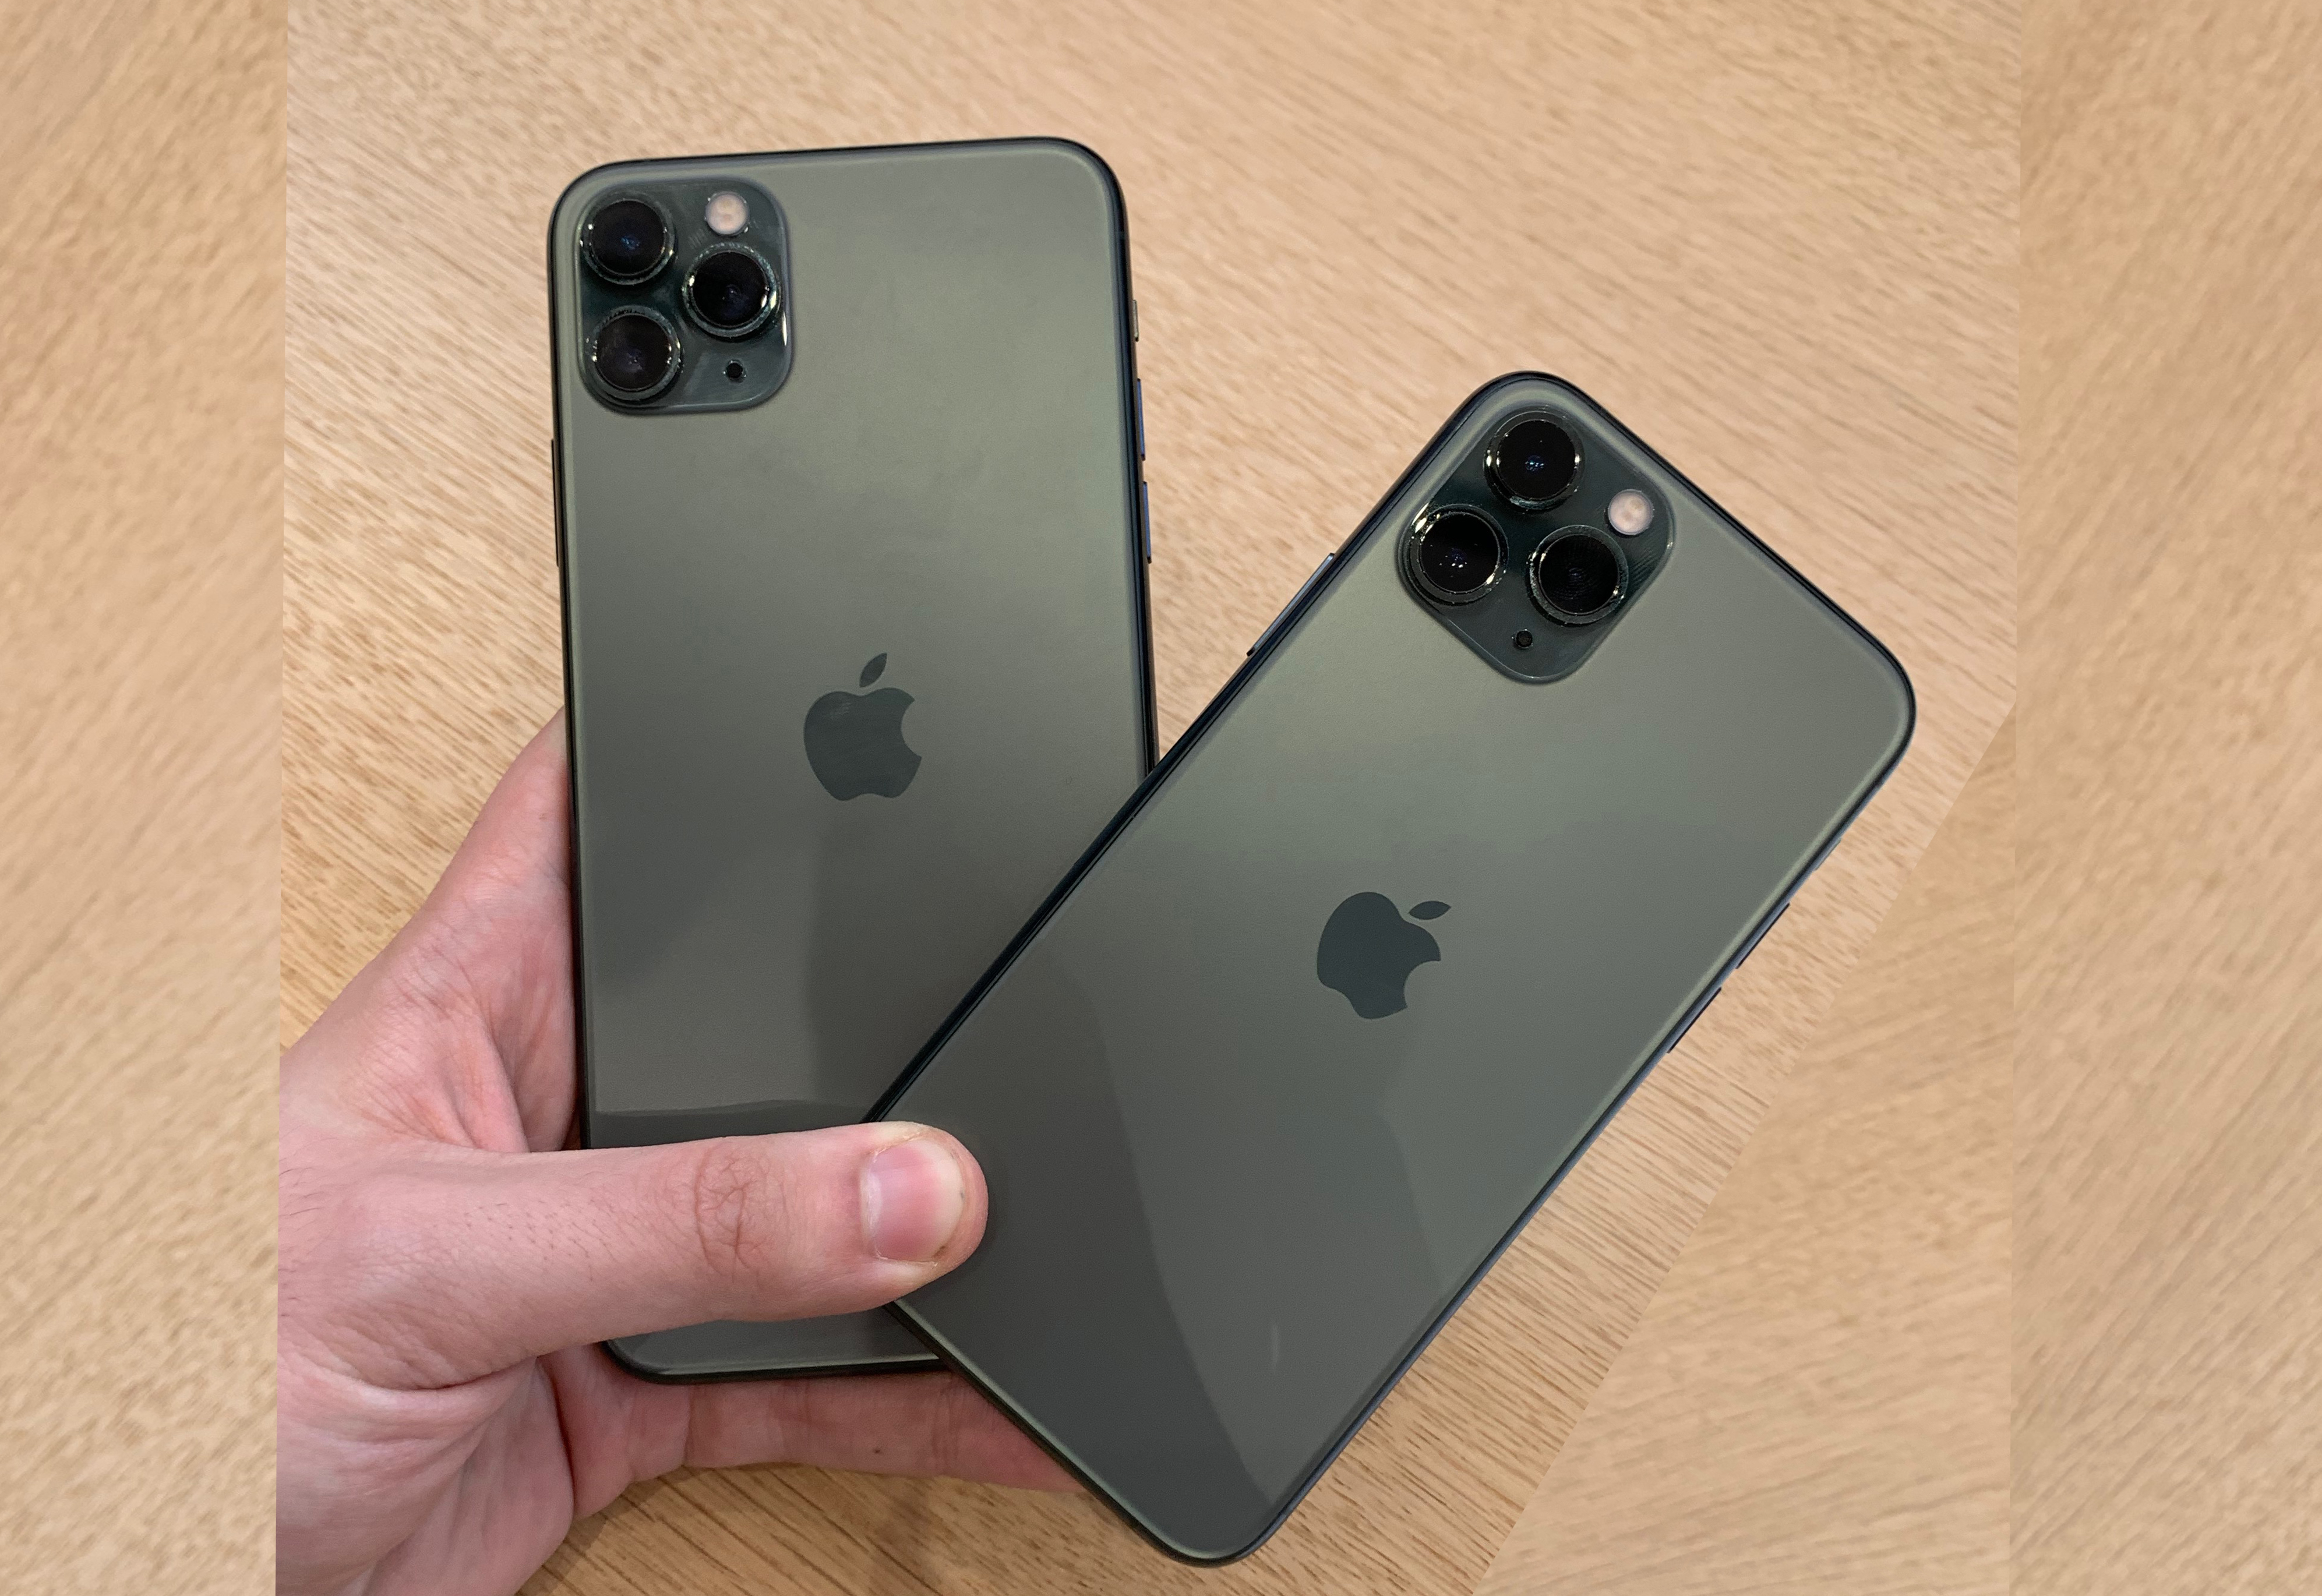 Iphone Buyer S Guide Iphone 11 11 Pro 11 Pro Max Xr Or 8 Cnn Underscored